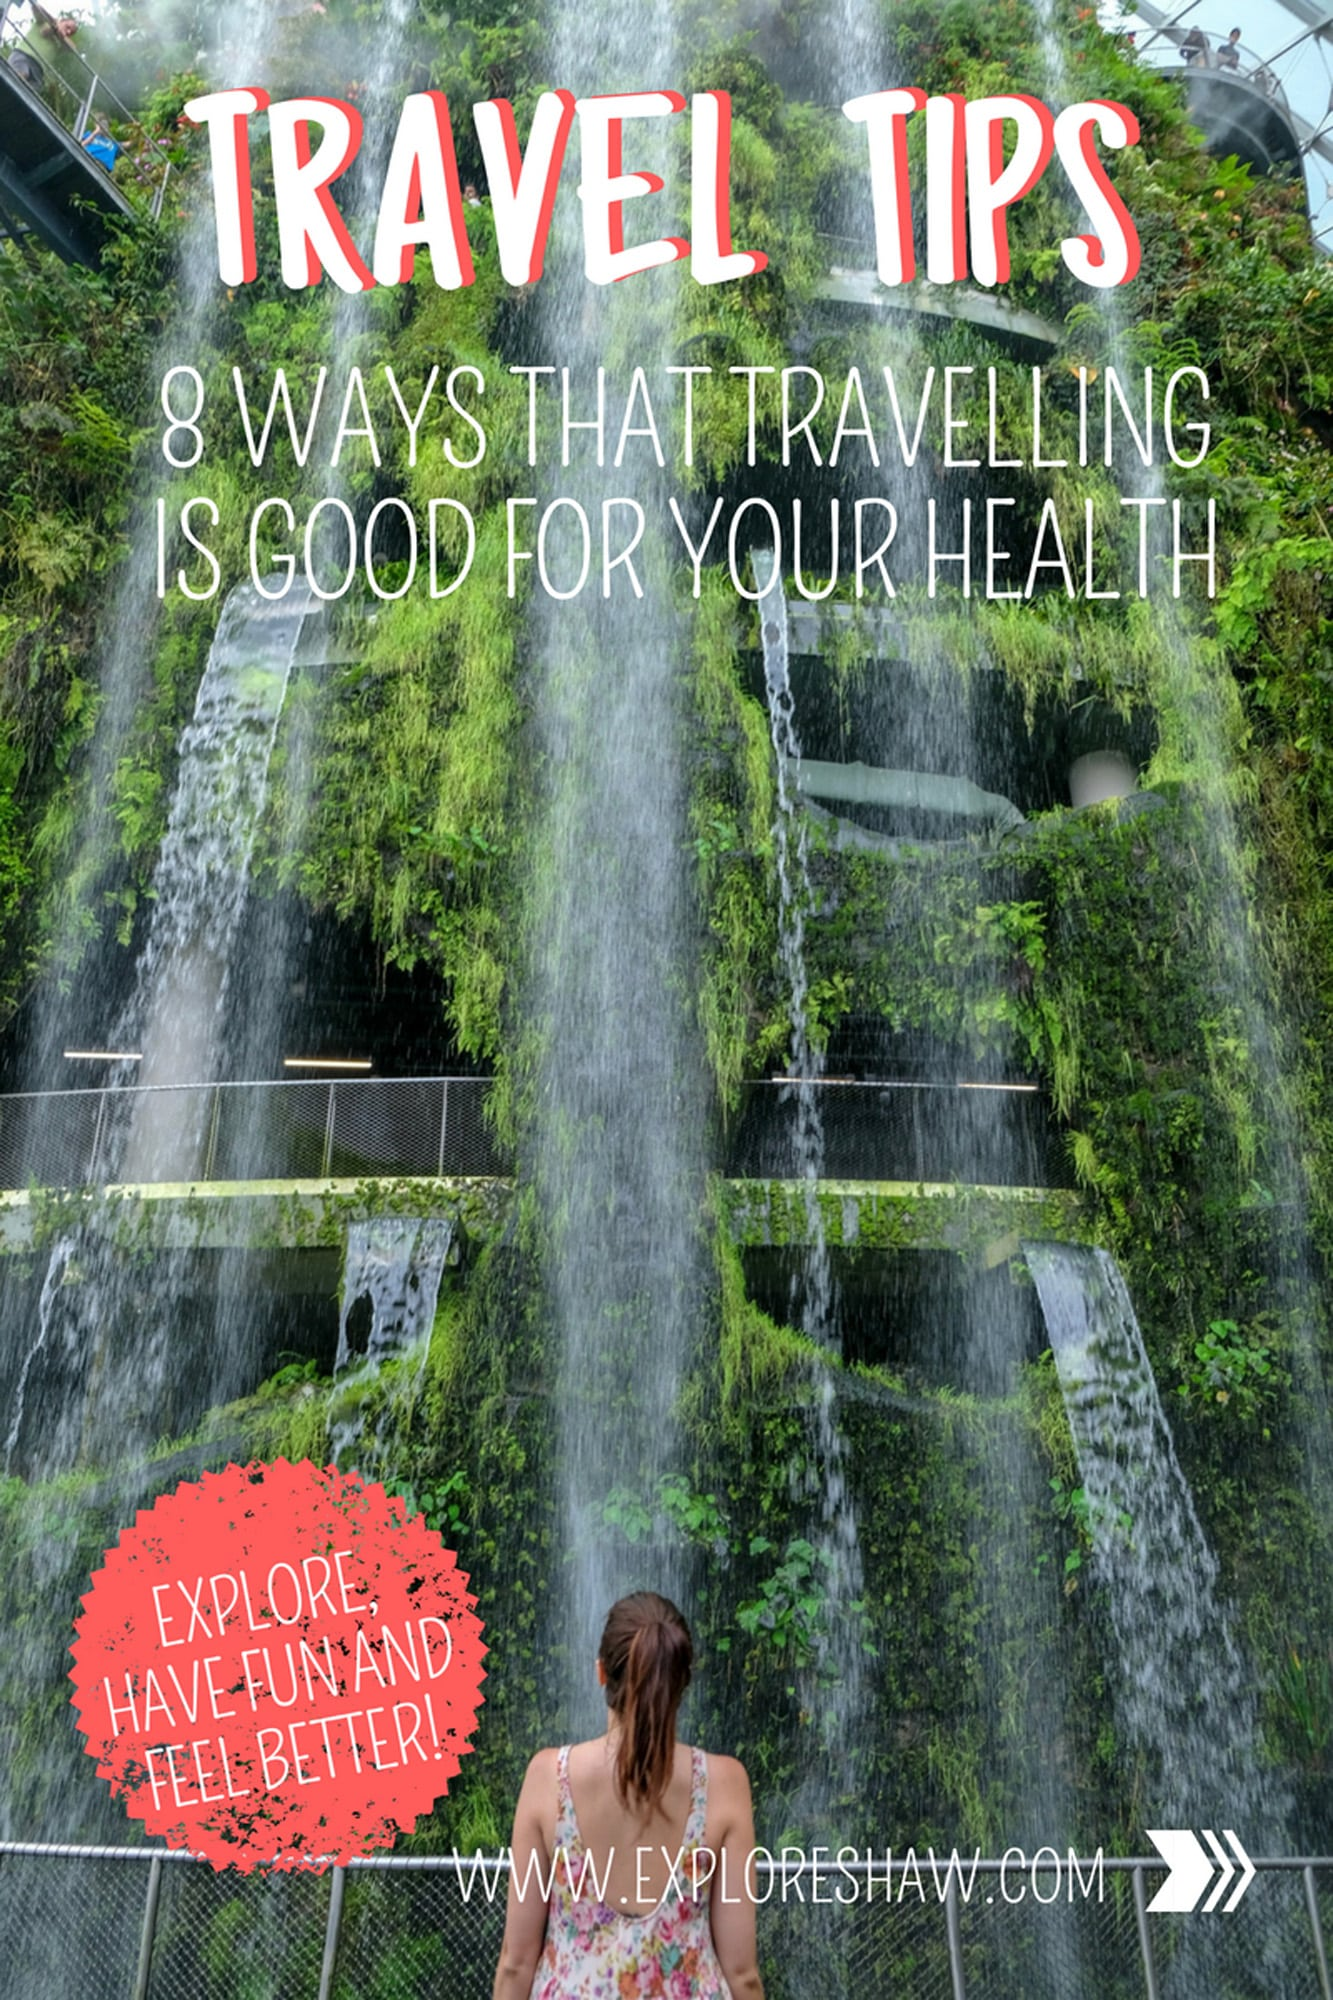 8 WAYS THAT TRAVELLING IS GOOD FOR YOUR HEALTH